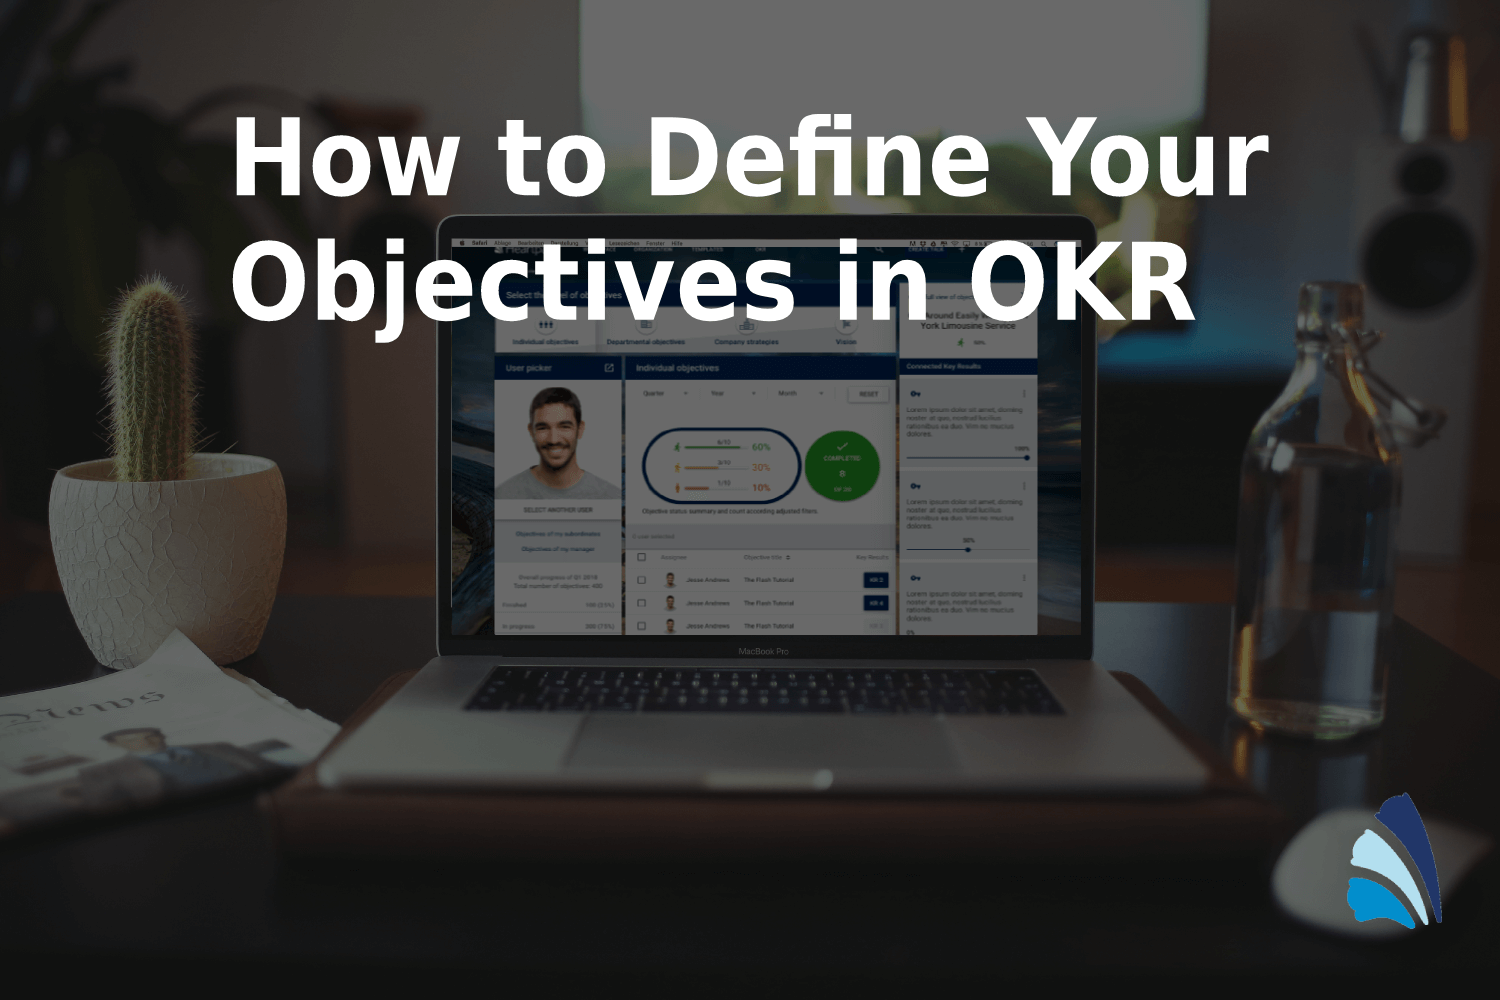 How to Define Your Objectives in OKR